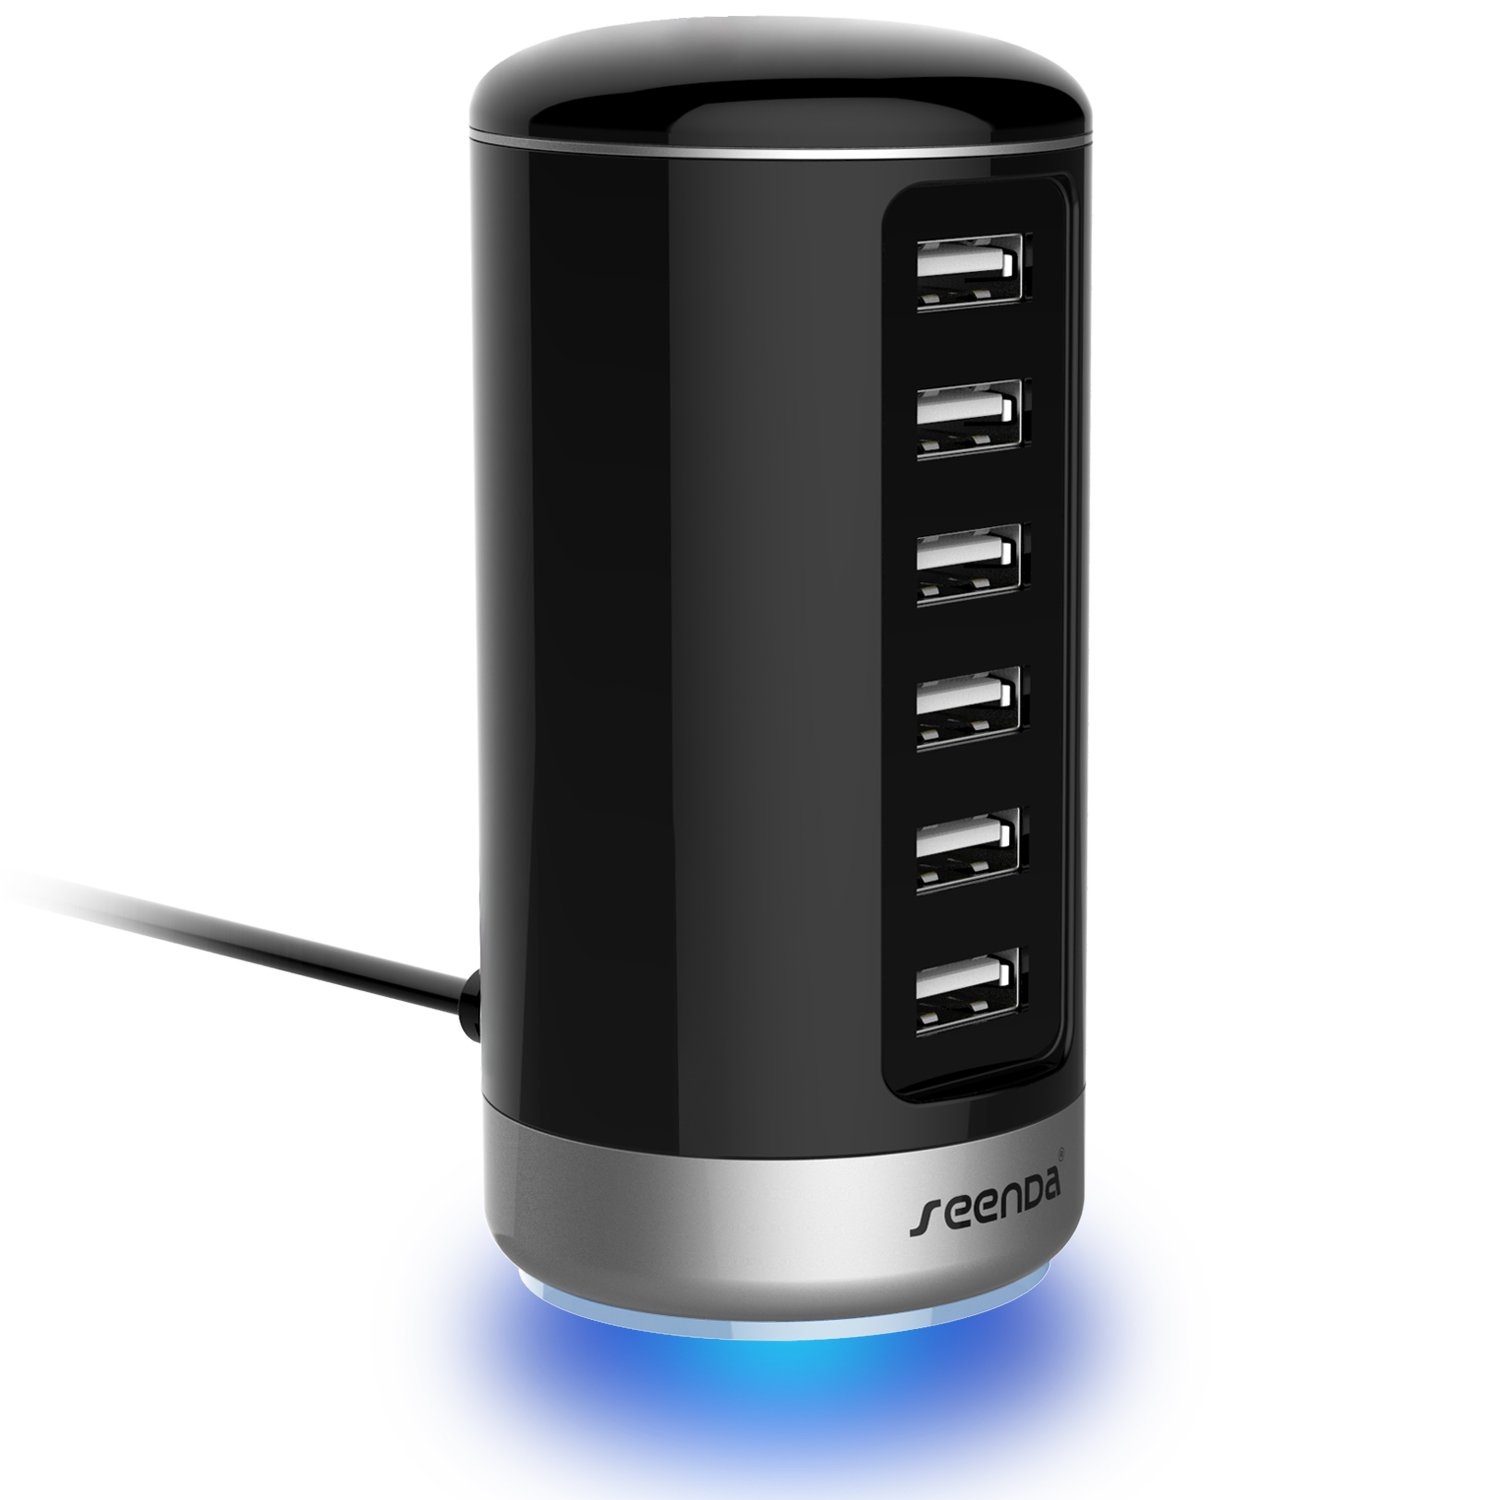 USB Charger, 6 Port USB Wall Charger - Seenda USB Charging Stations with Smart Identification - Black by seenda